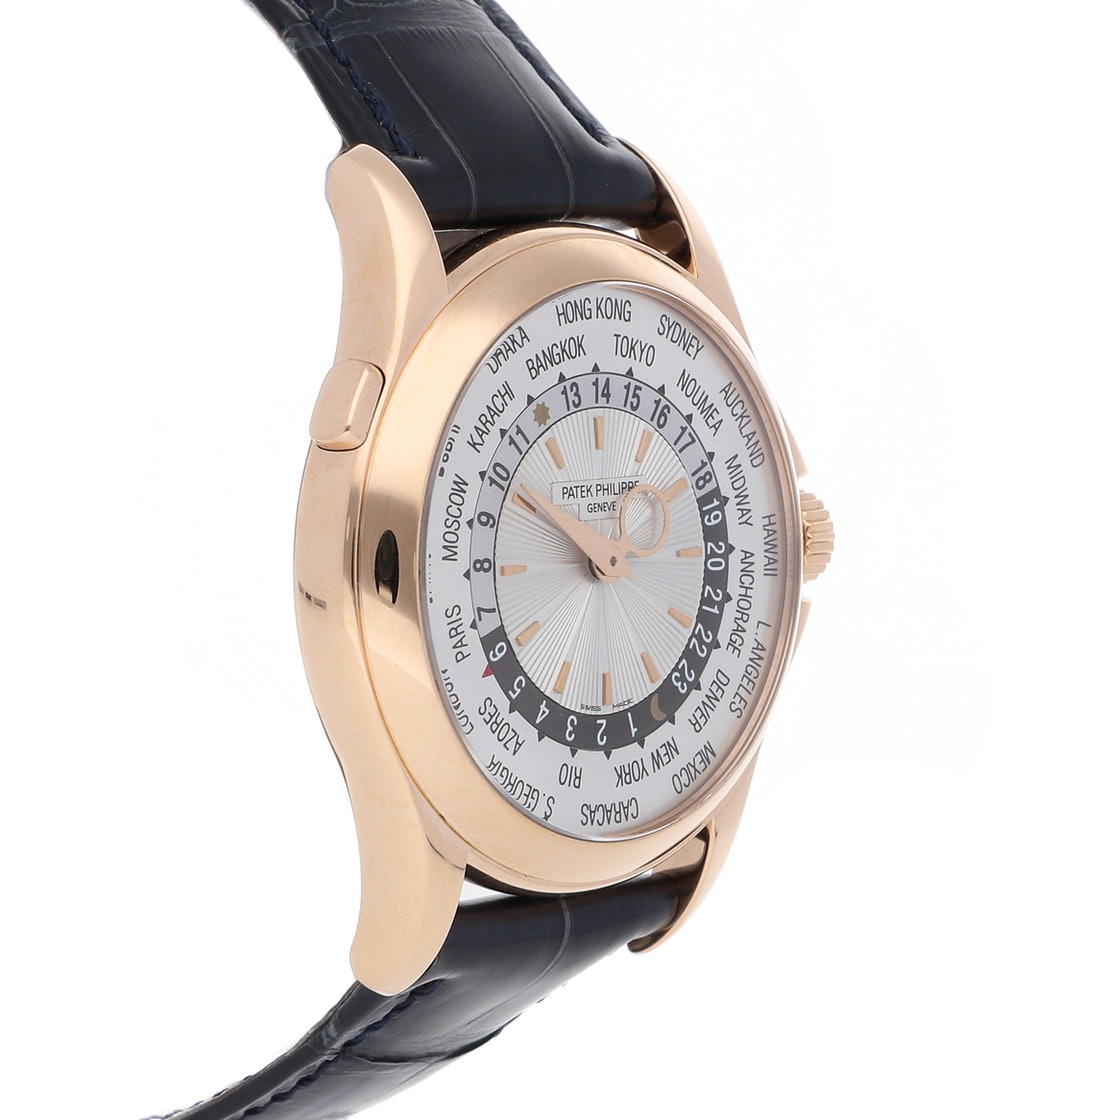 Patek Philippe Complications World Time 5130R-001